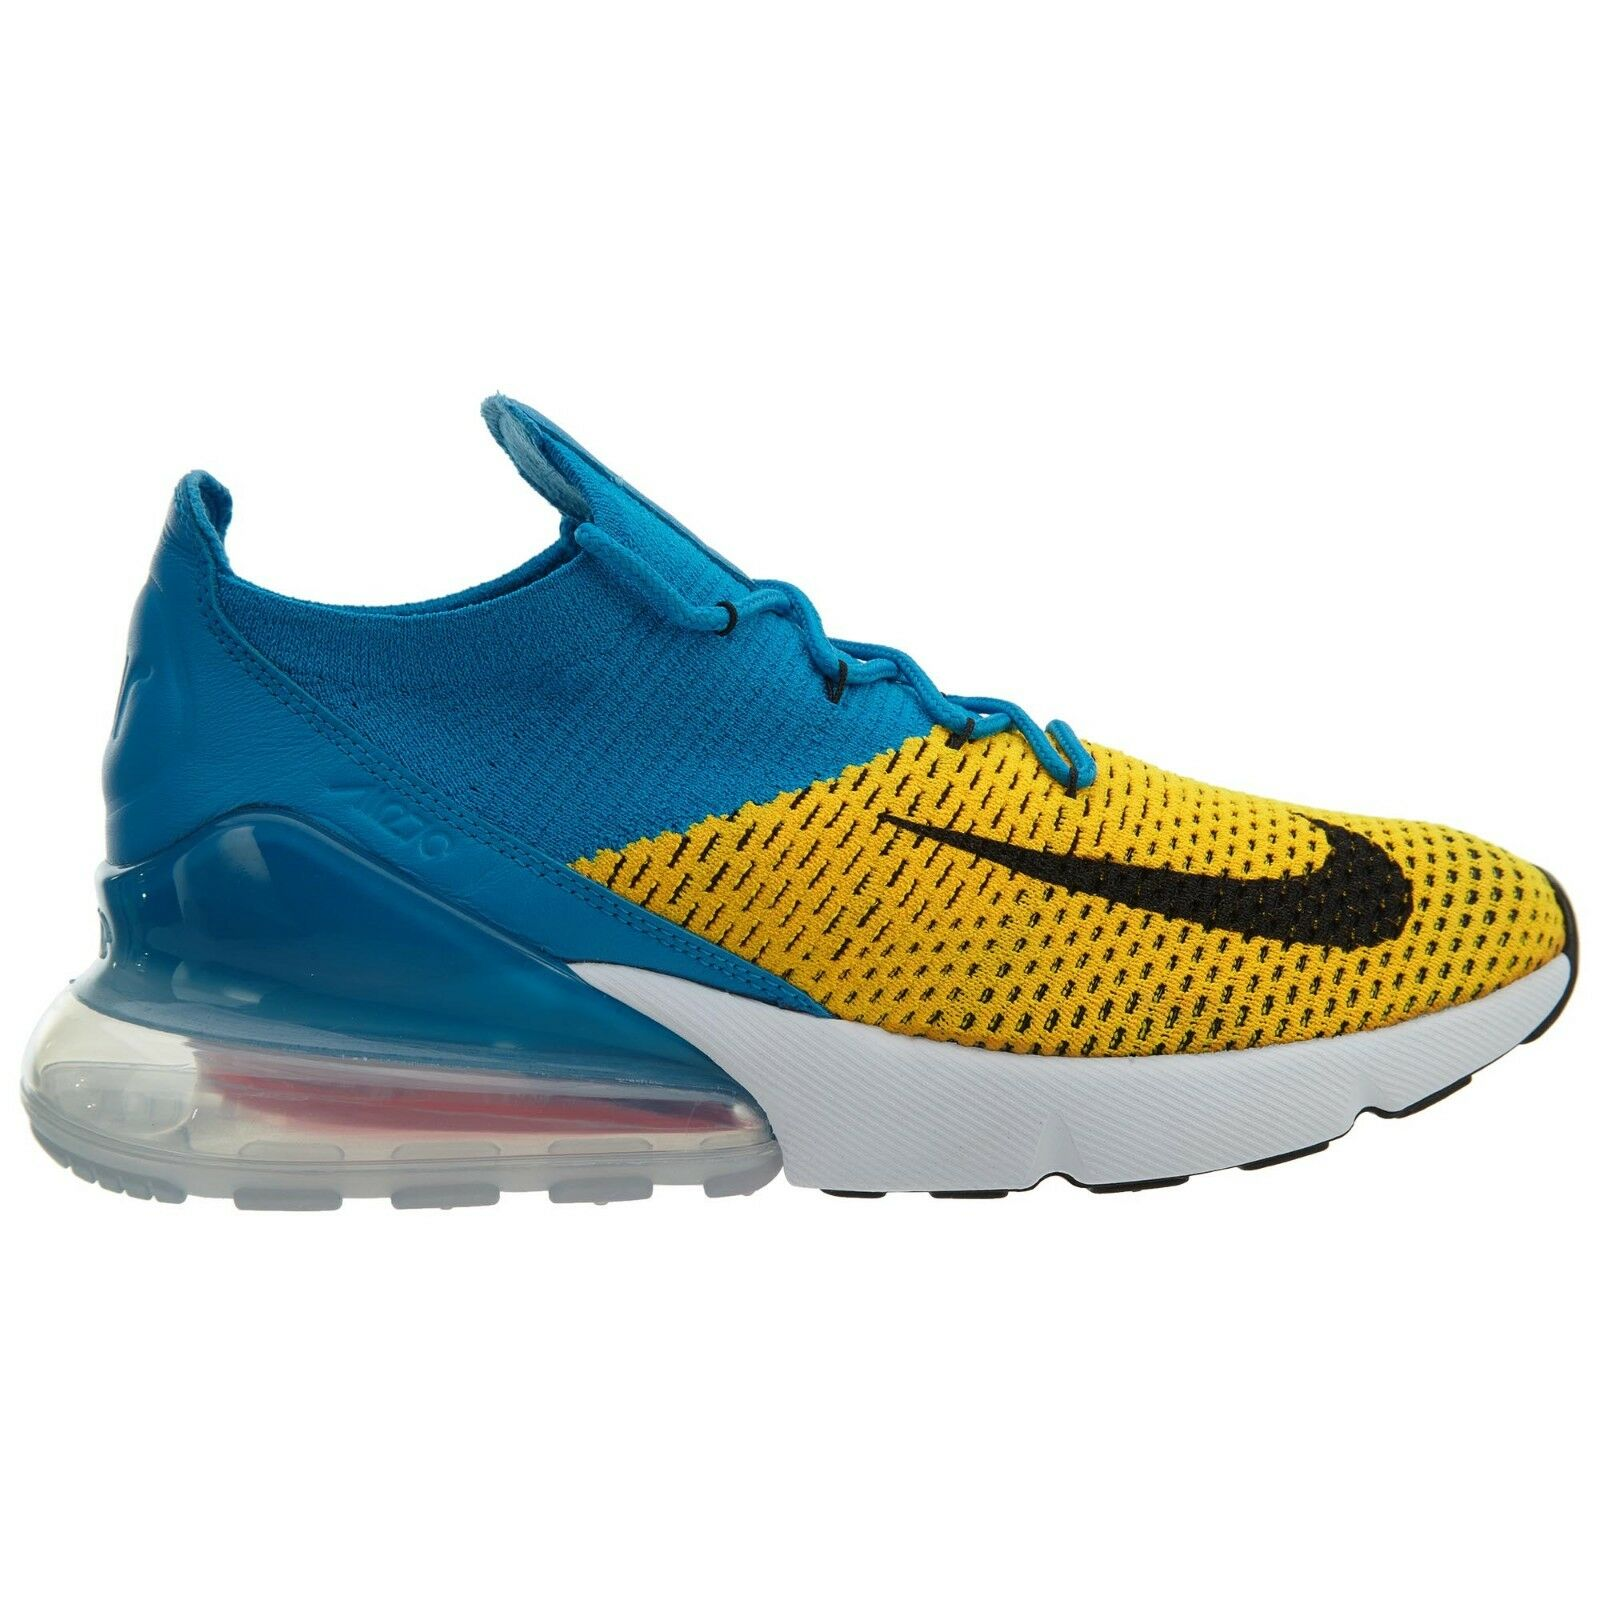 Nike Air Max 270 Flyknit Mens AO1023-800 Laser Orange Shoes Blue Orbit Shoes Orange Size 10 5a1a96